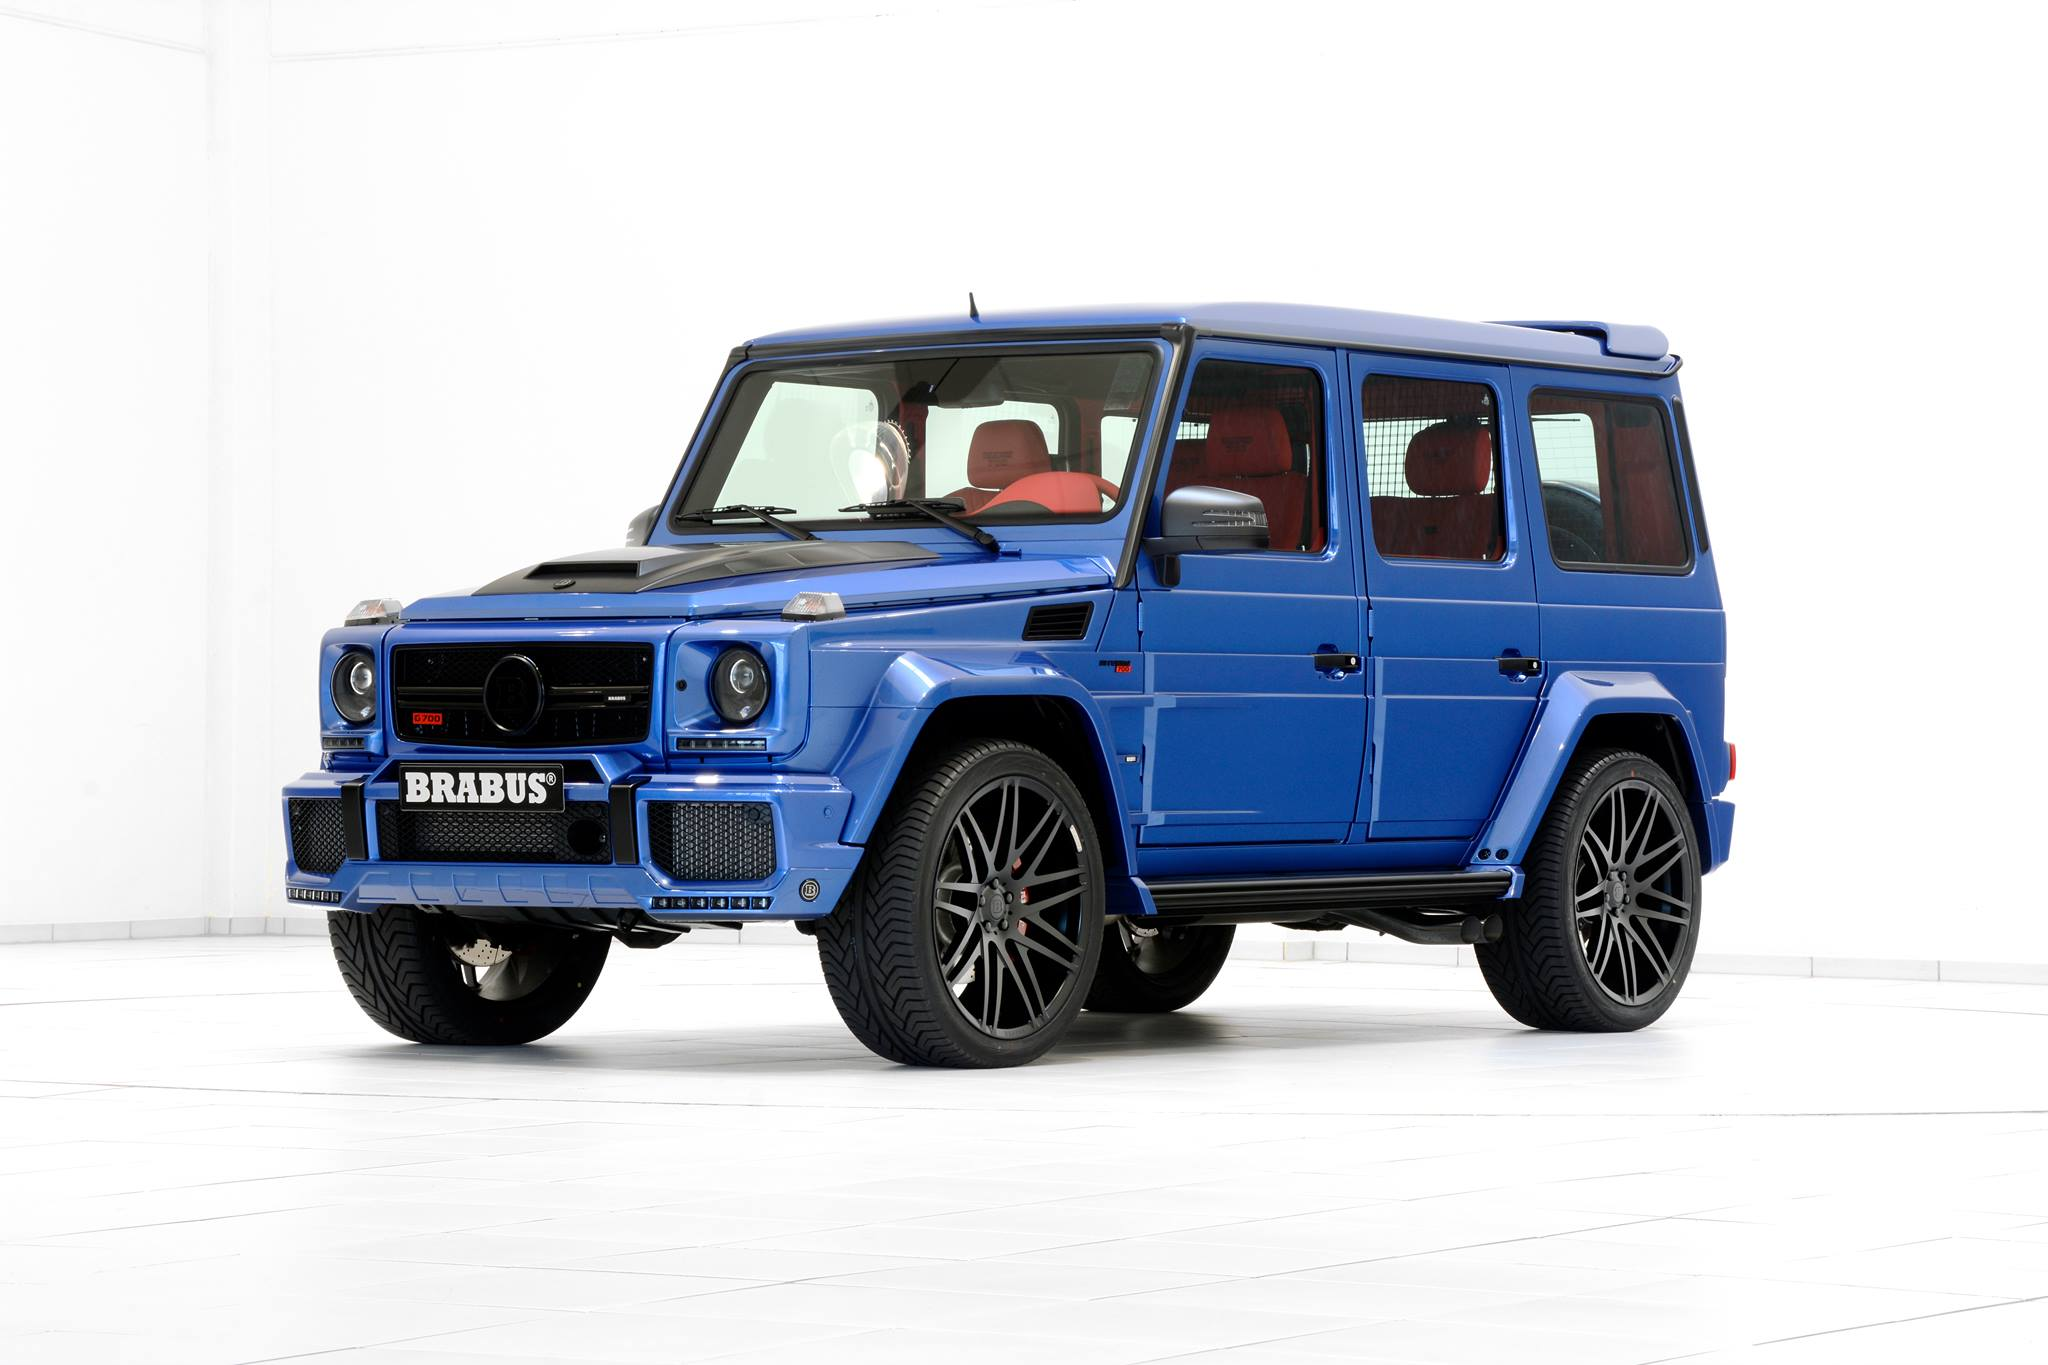 G Wagon Brabus 2016 >> Brabus' 700 HP G63 AMG Combines Blue Paint and Red Leather - autoevolution